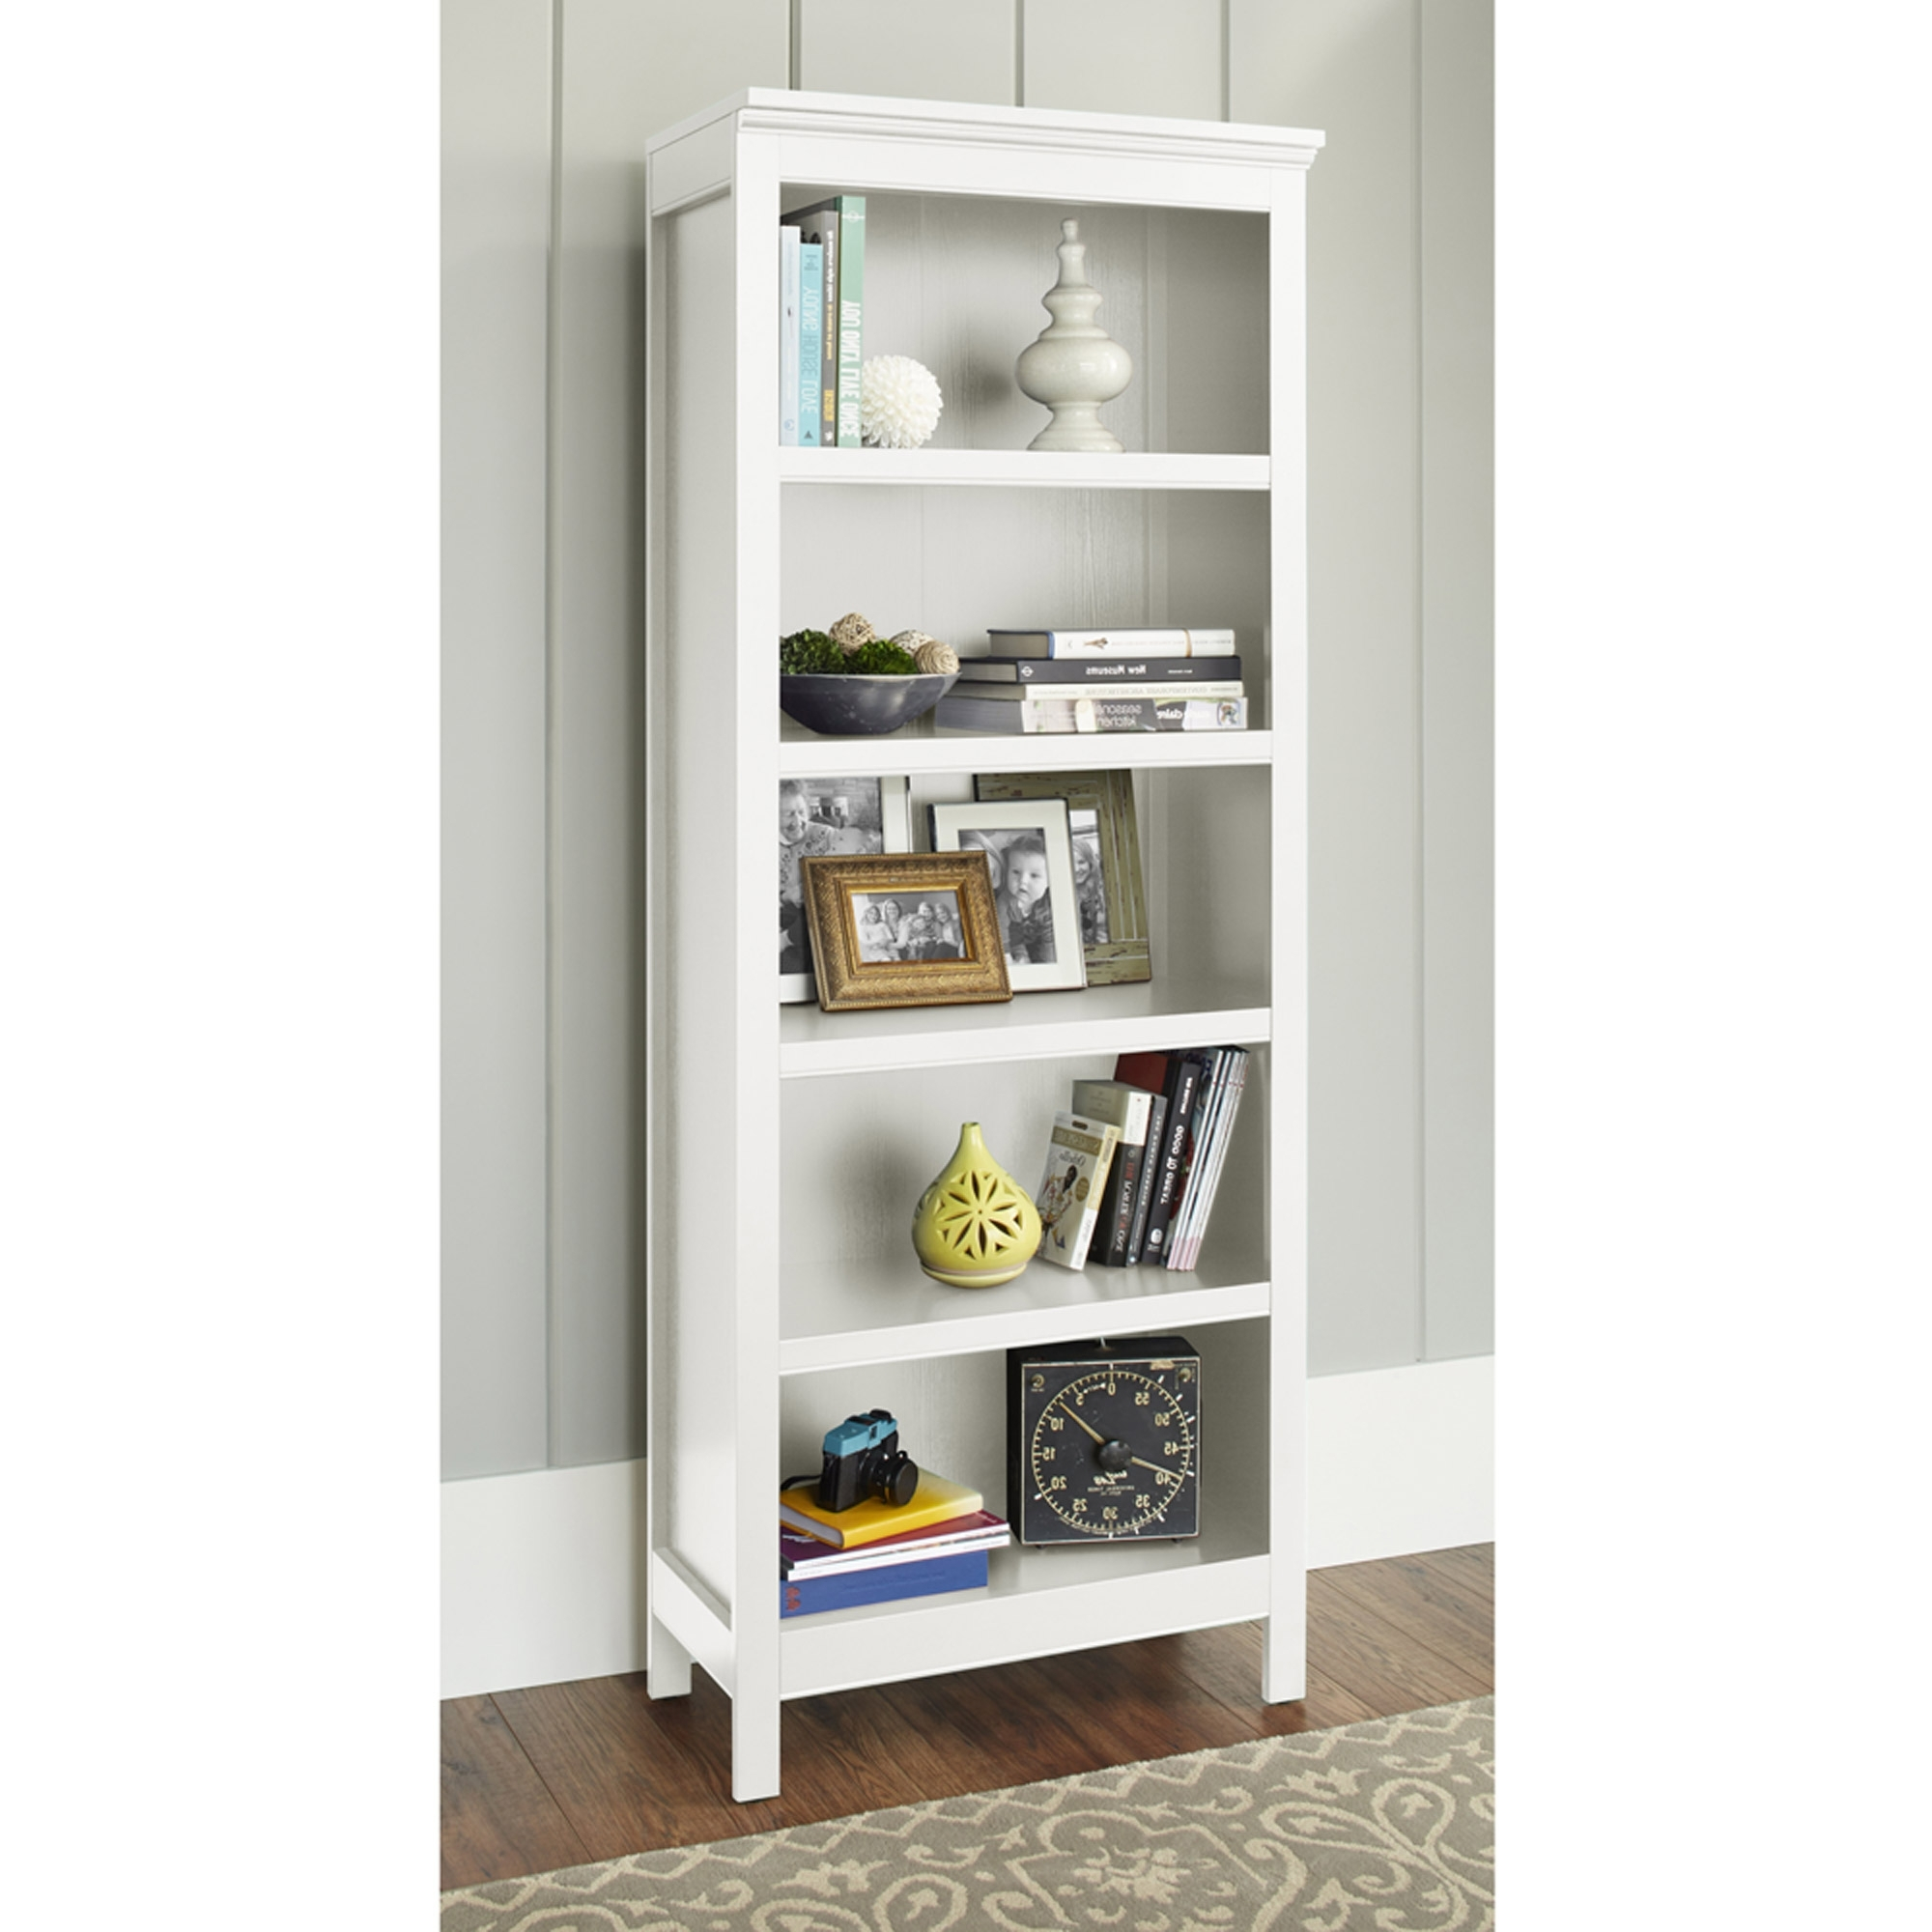 5 Shelf Bookcases With Recent Product (Gallery 6 of 15)